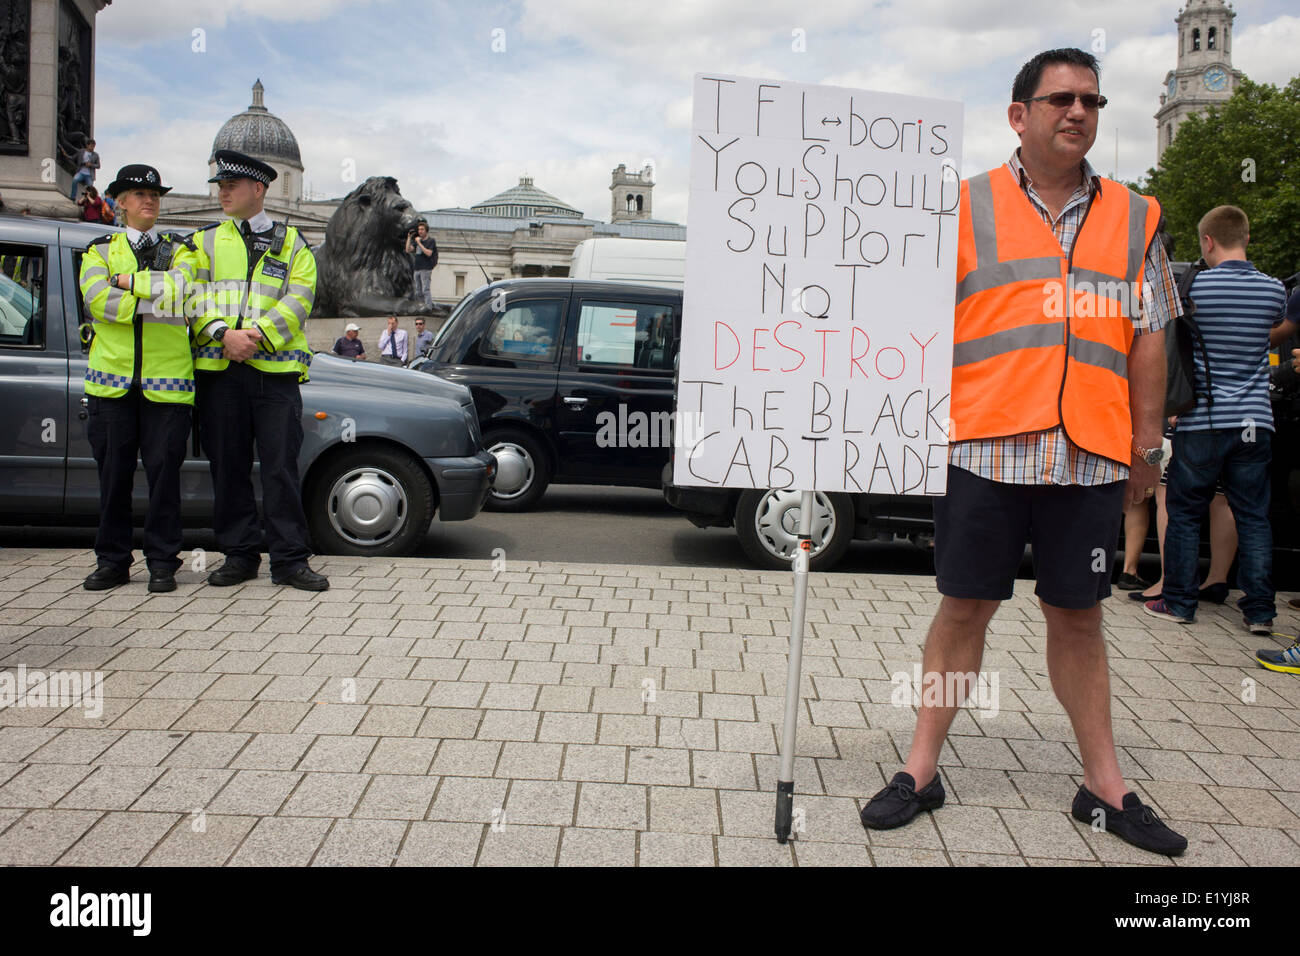 Black taxi cab drivers protest in Whitehall, central London, objecting to a new online booking and journey fare Stock Photo